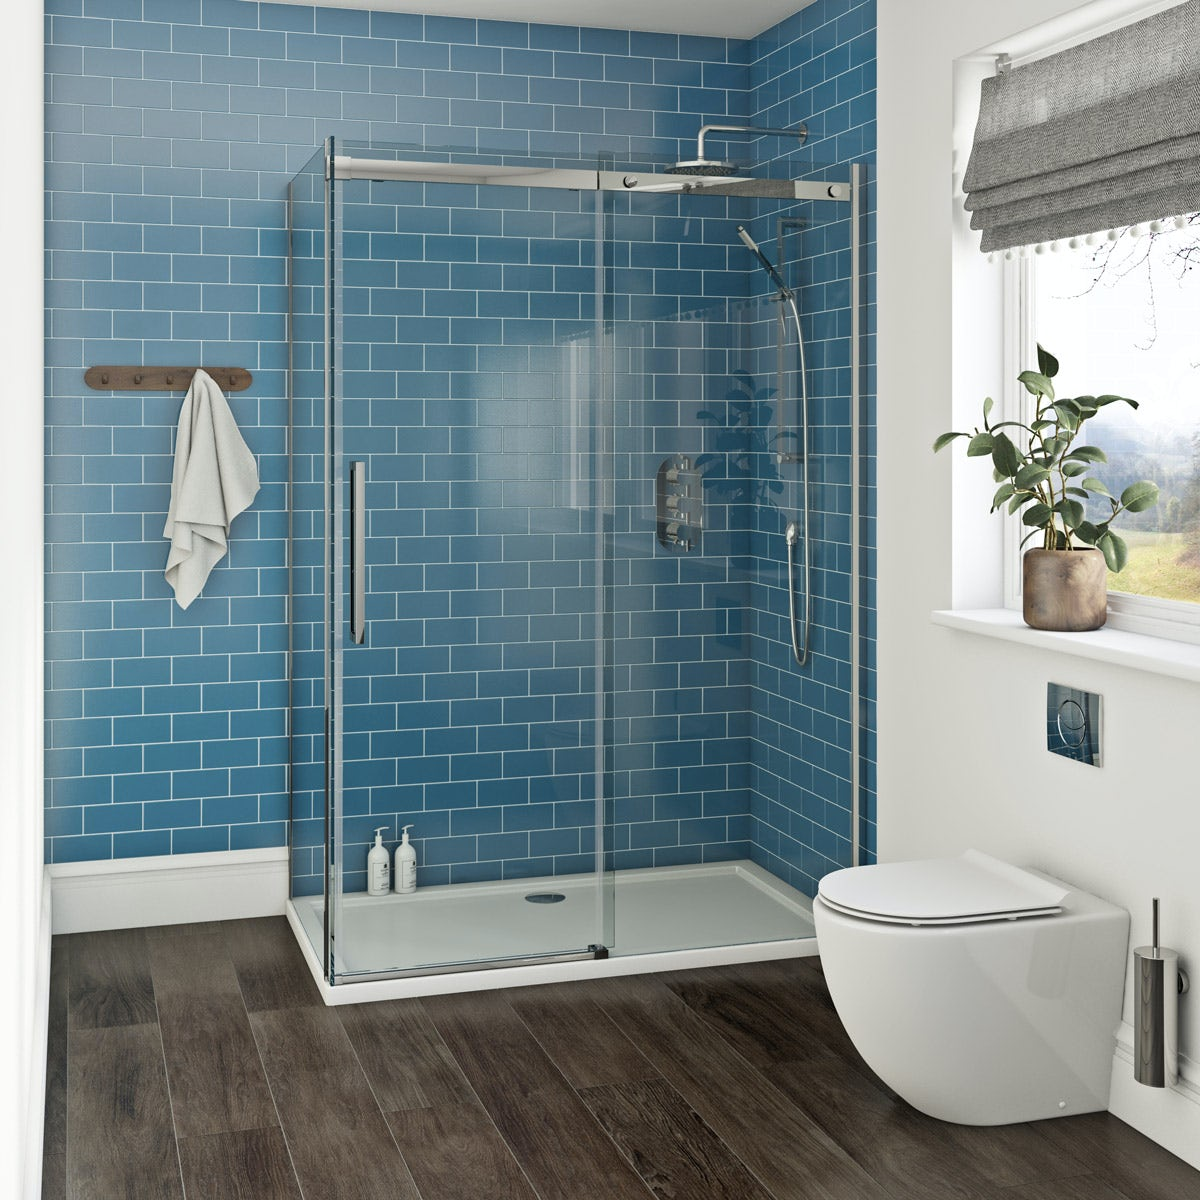 Mode Harrison 10mm easy clean shower enclosure 1200 x 800 ...